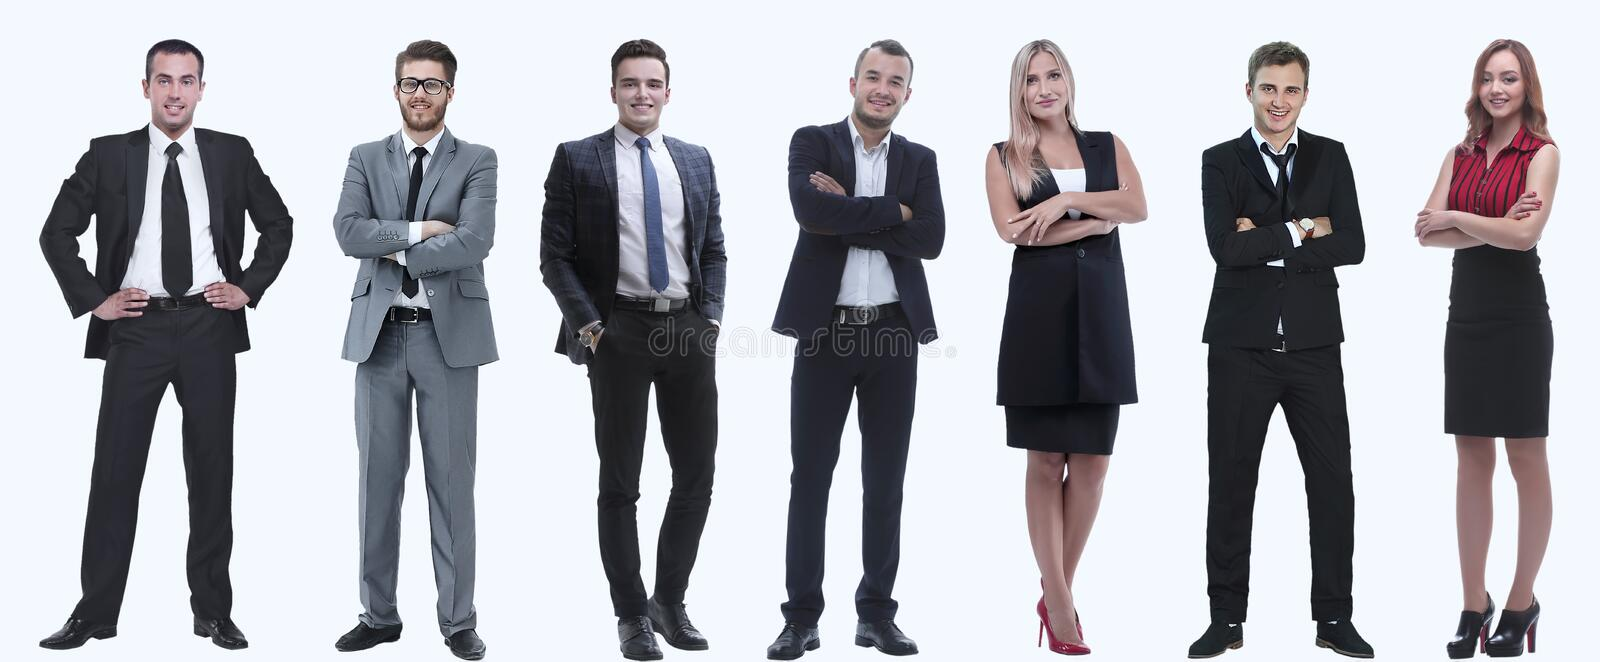 Collage of a variety of business people standing in a row. Isolated on white background royalty free stock images